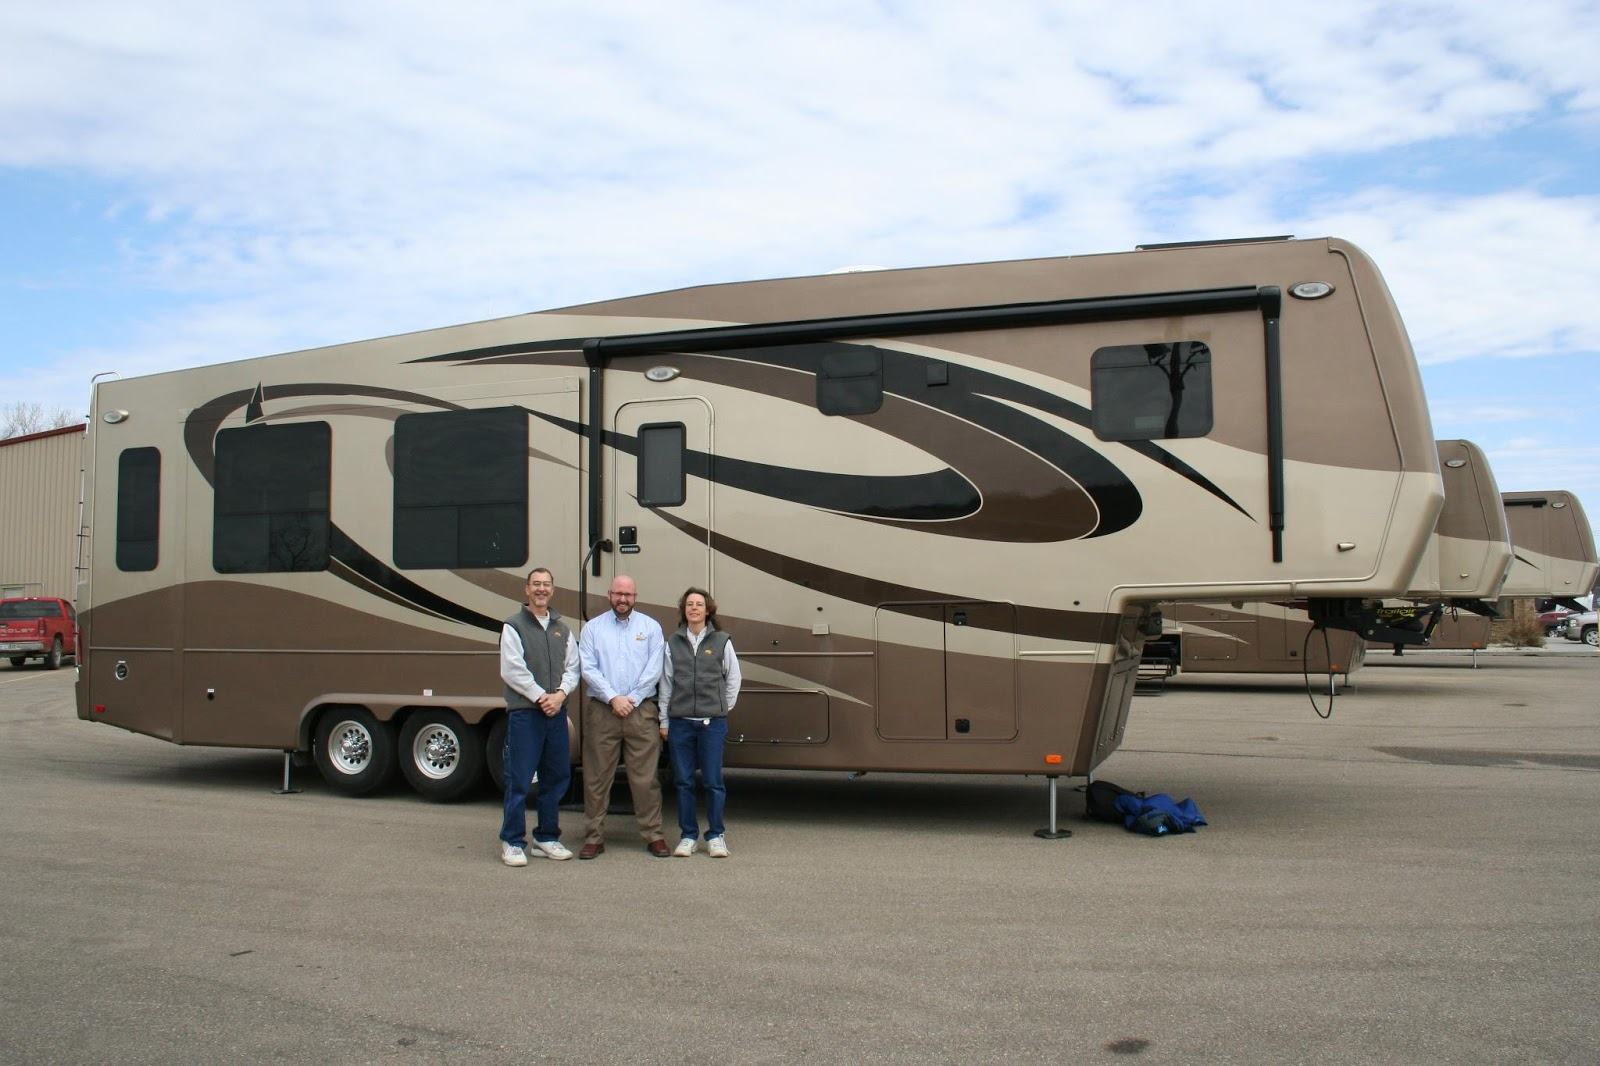 Expense when we other recreational vehicles and